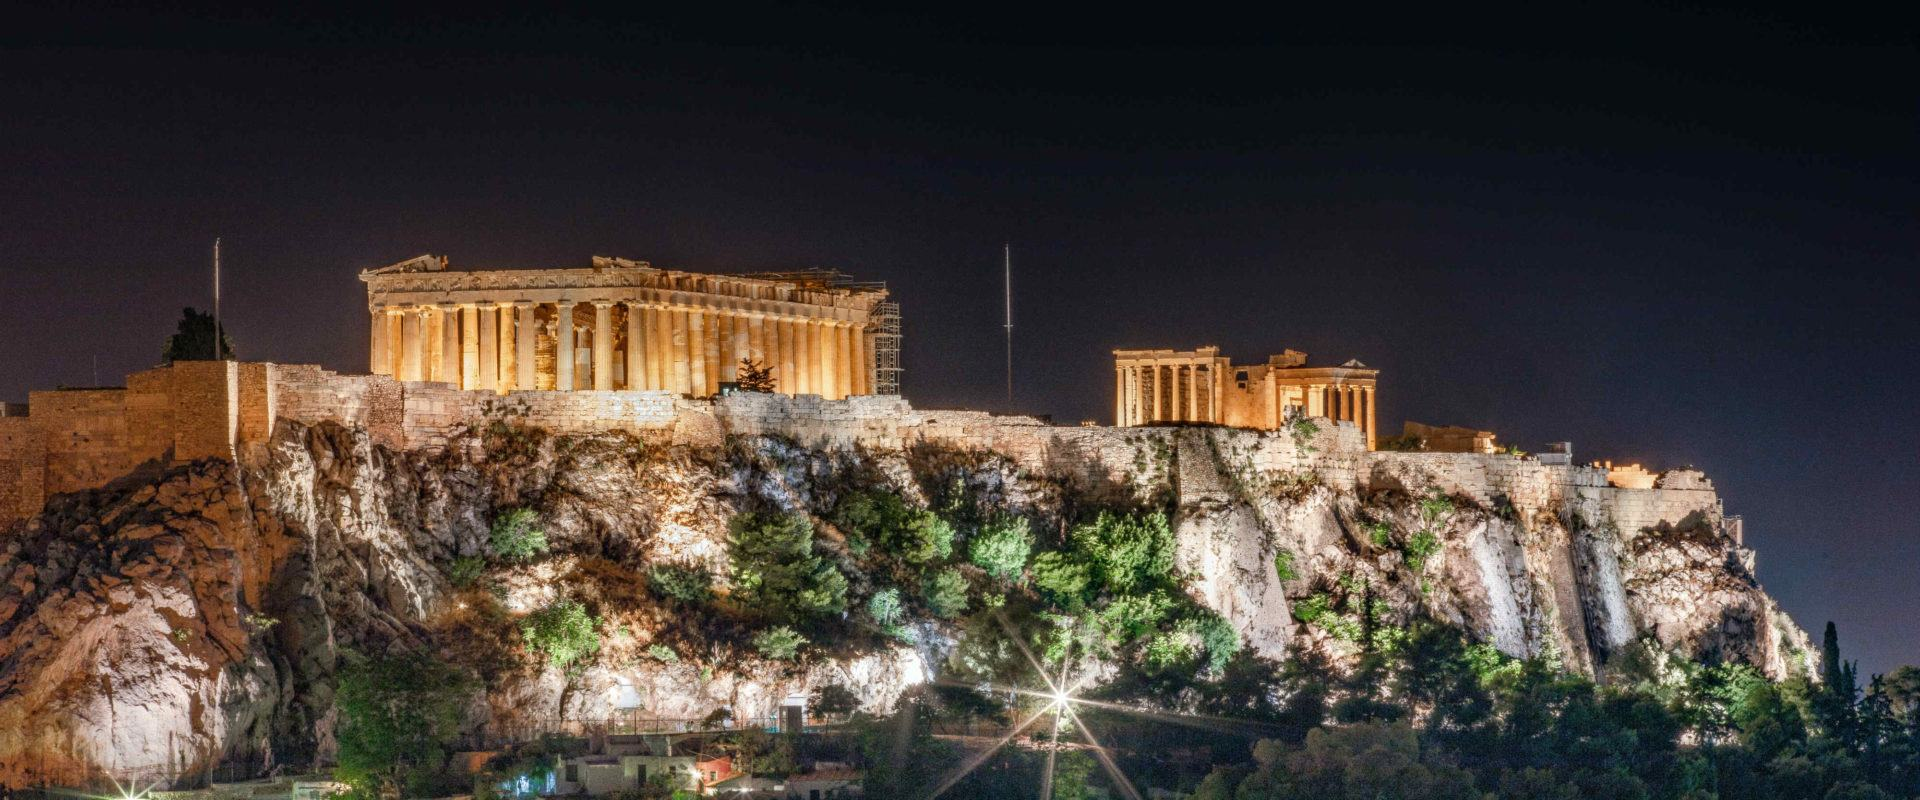 new athens image banner